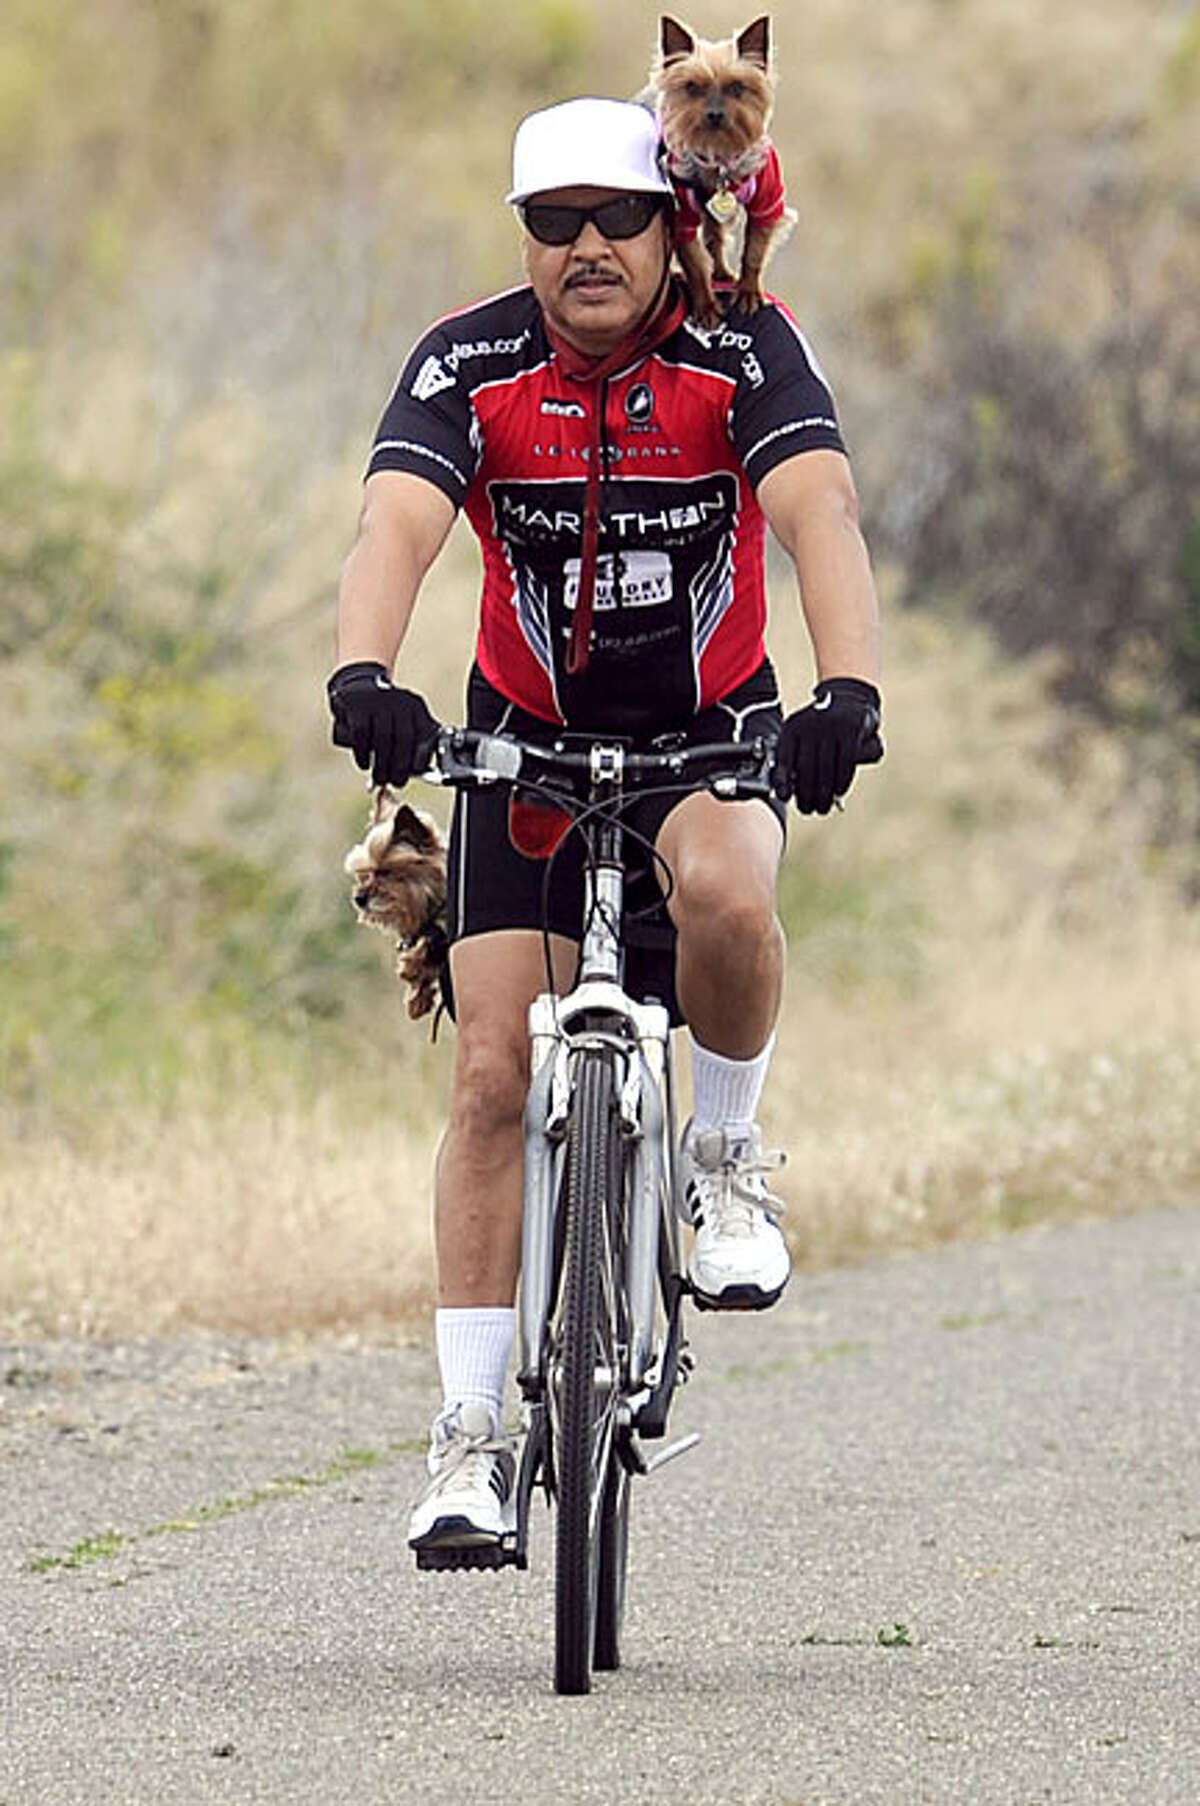 Joel Camacho of Fairfield, California has two four-legged passengers along for his bike ride on Nelson Rd. between Vacaville and Fairfield on Thursday, June 10, 2010. Camacho said that he used to ride with